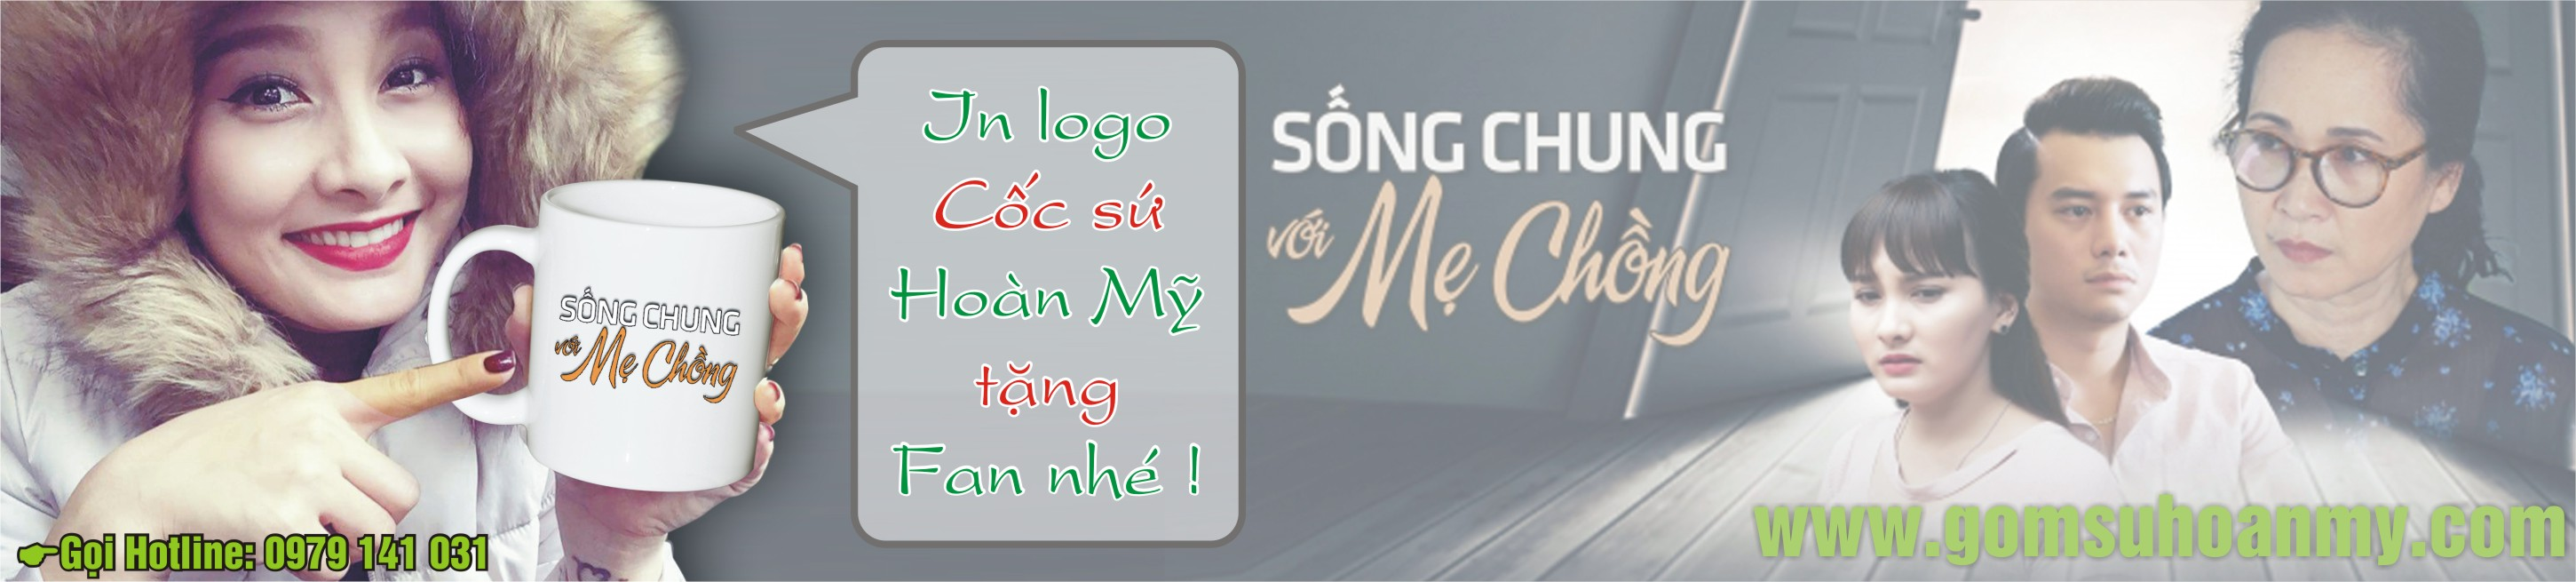 coc-su-song-chung-voi-me-chong